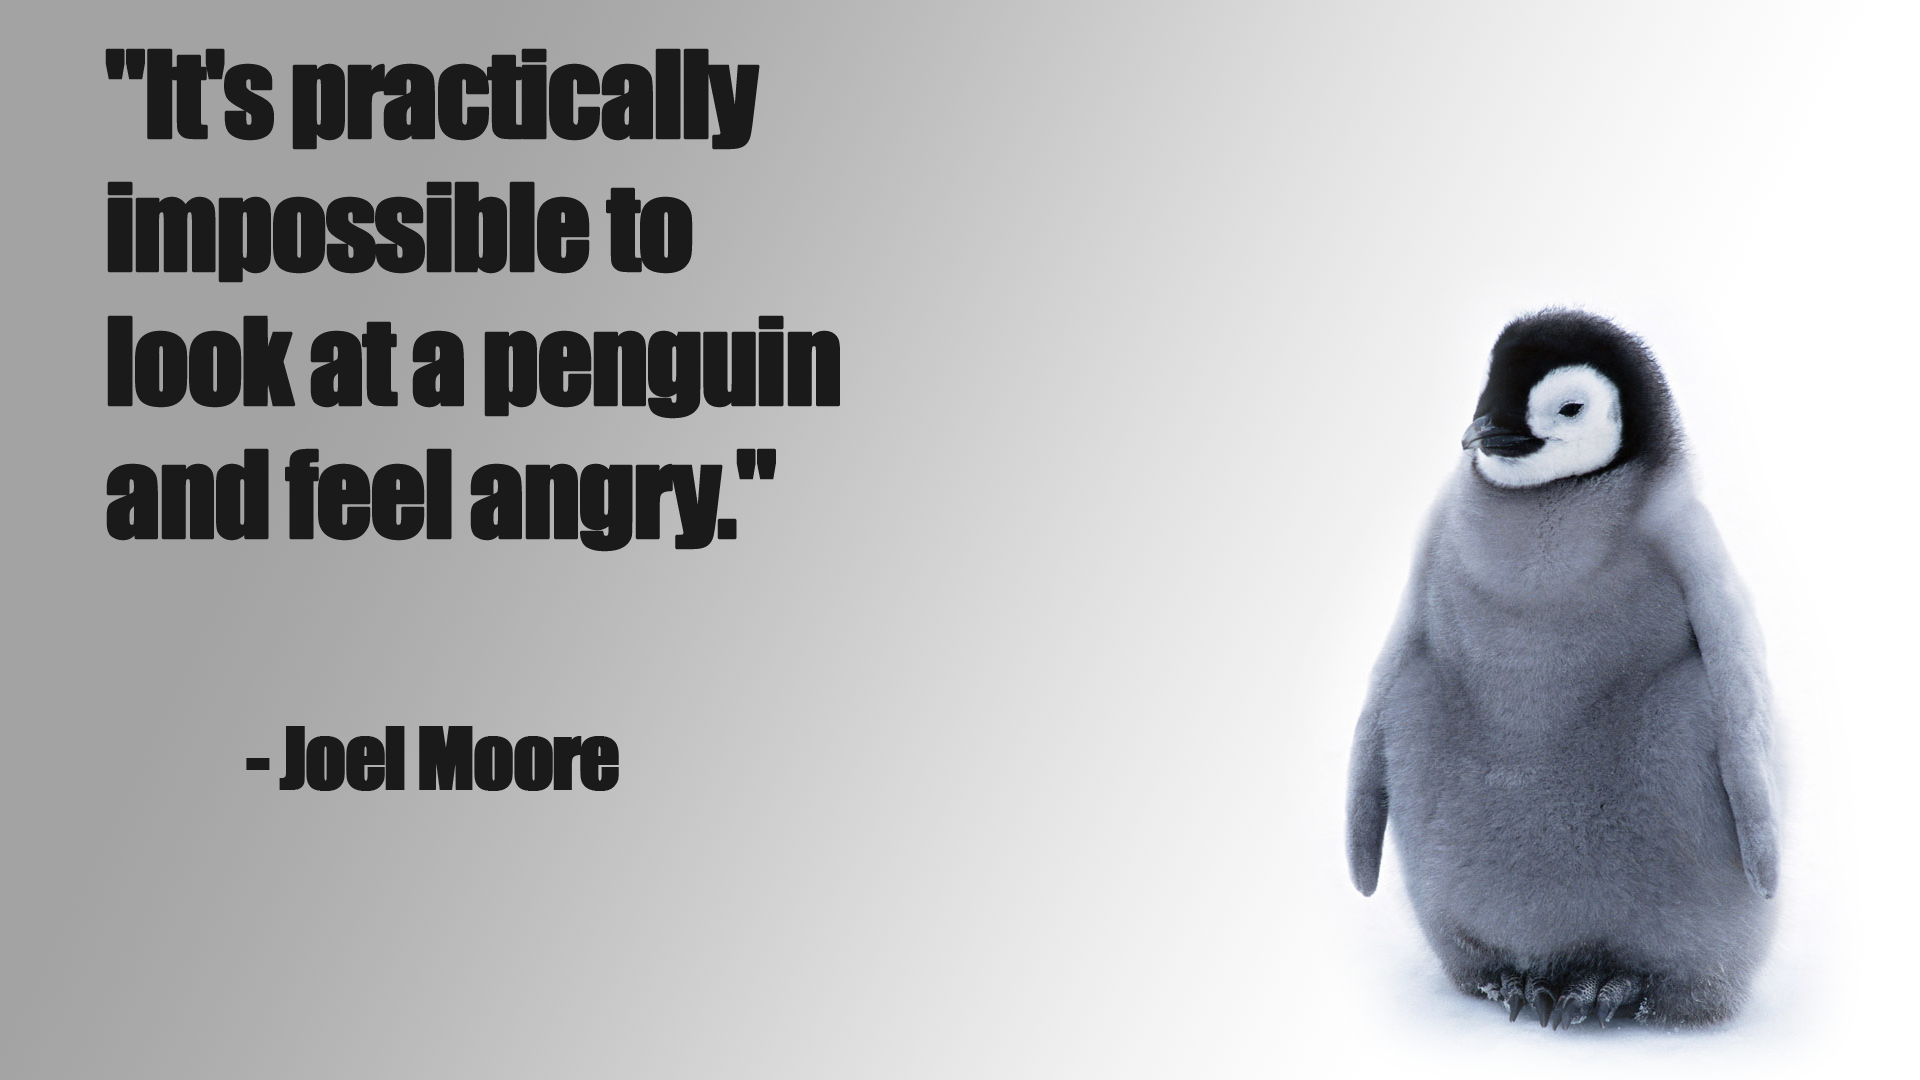 Penguin funny baby chick snow cute wallpaper 1920x1080 124241 1920x1080